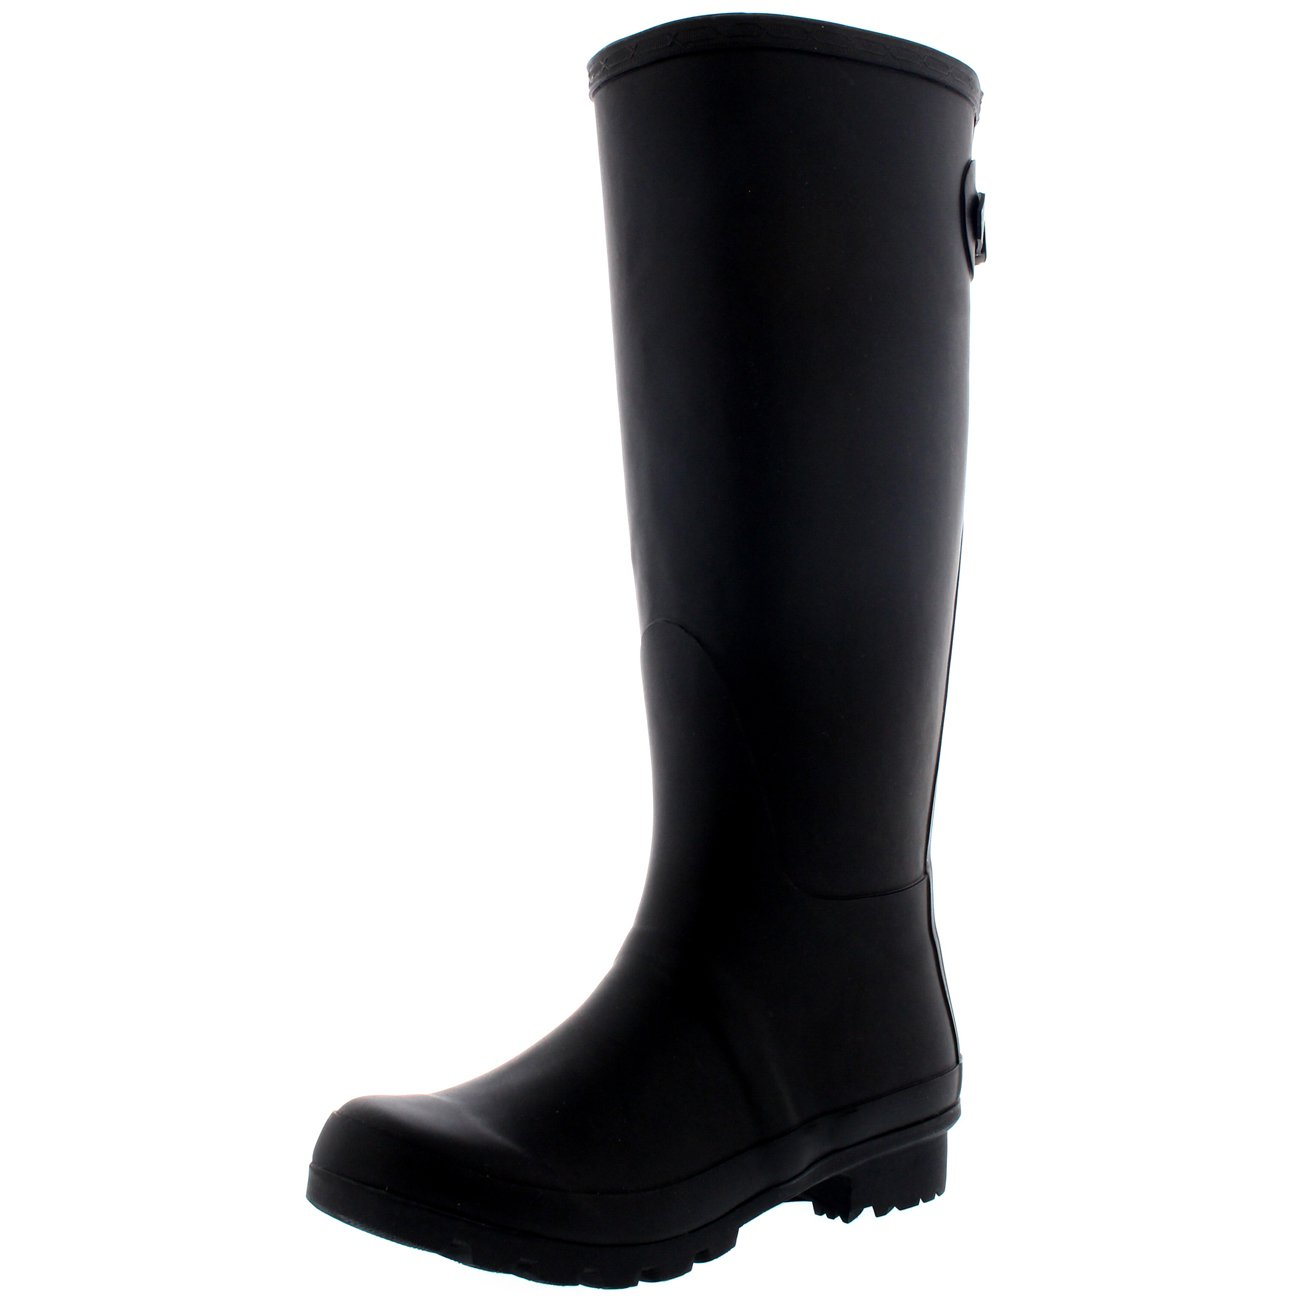 Womens Adjustable Back Tall Waterproof Winter Rain Wellies Wellington Boots - Black - 9-40 - CD0013